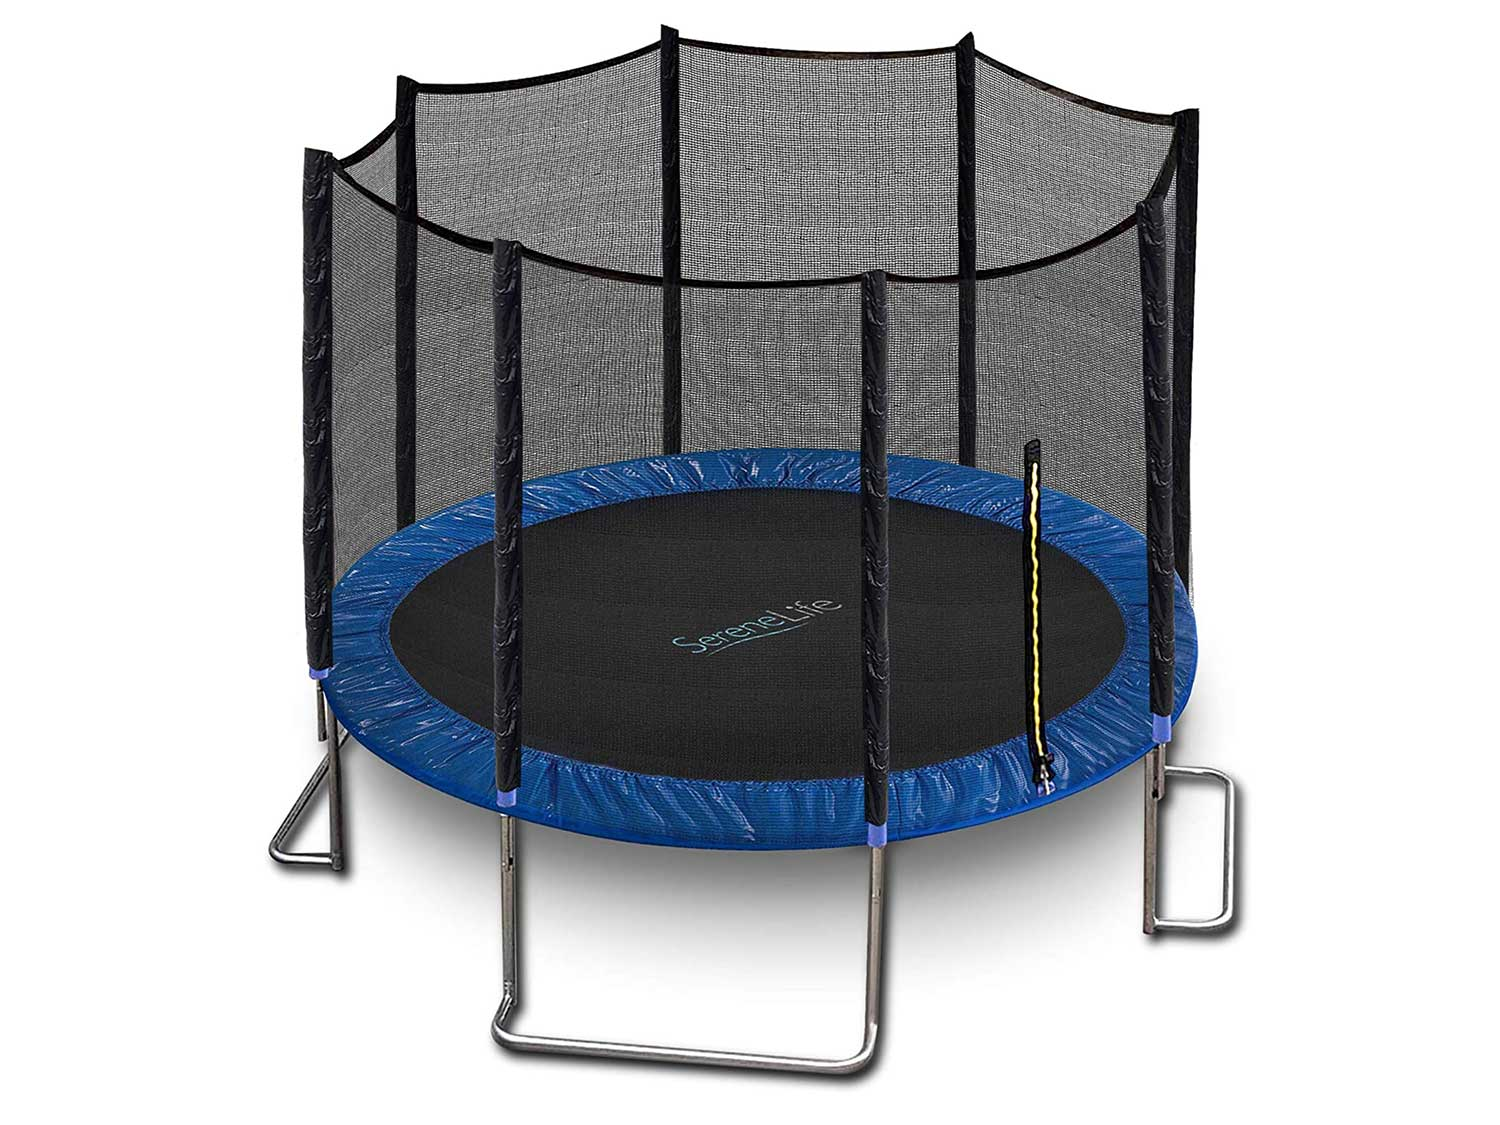 SereneLife Trampoline with Net Enclosure – ASTM Approved, Stable, Strong Kids and Adult Trampoline with Net – Outdoor Trampoline for Kids, Teens and Adults